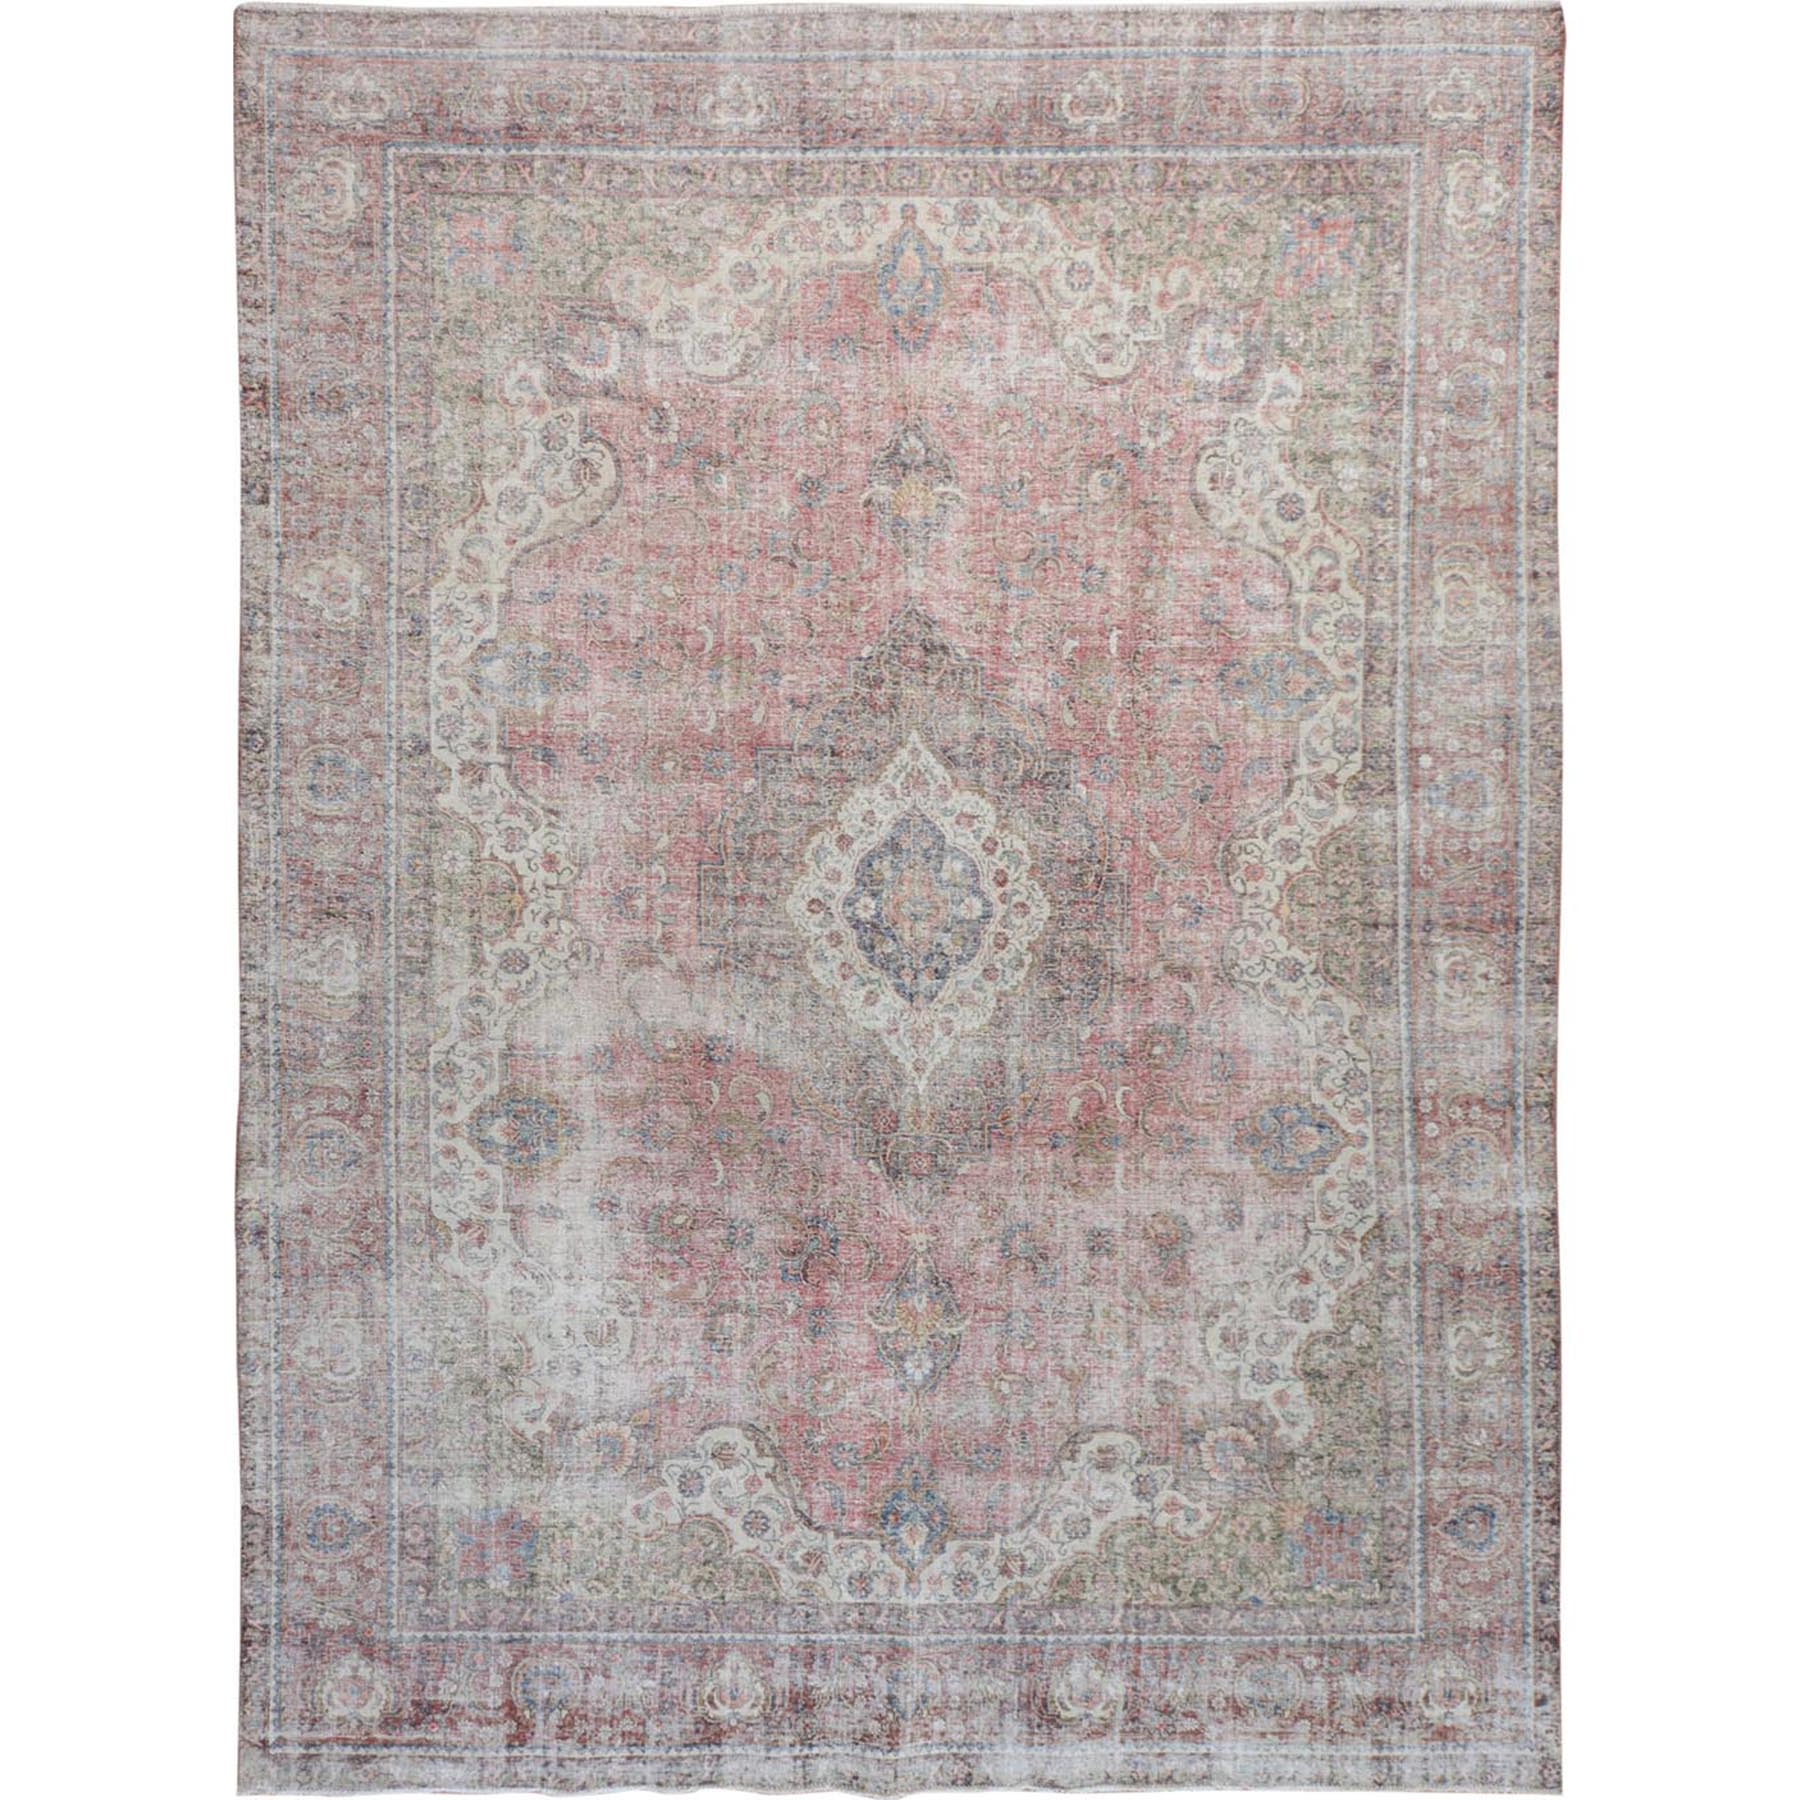 Fetneh Collection And Vintage Overdyed Collection Hand Knotted Pink Rug No: 01114700